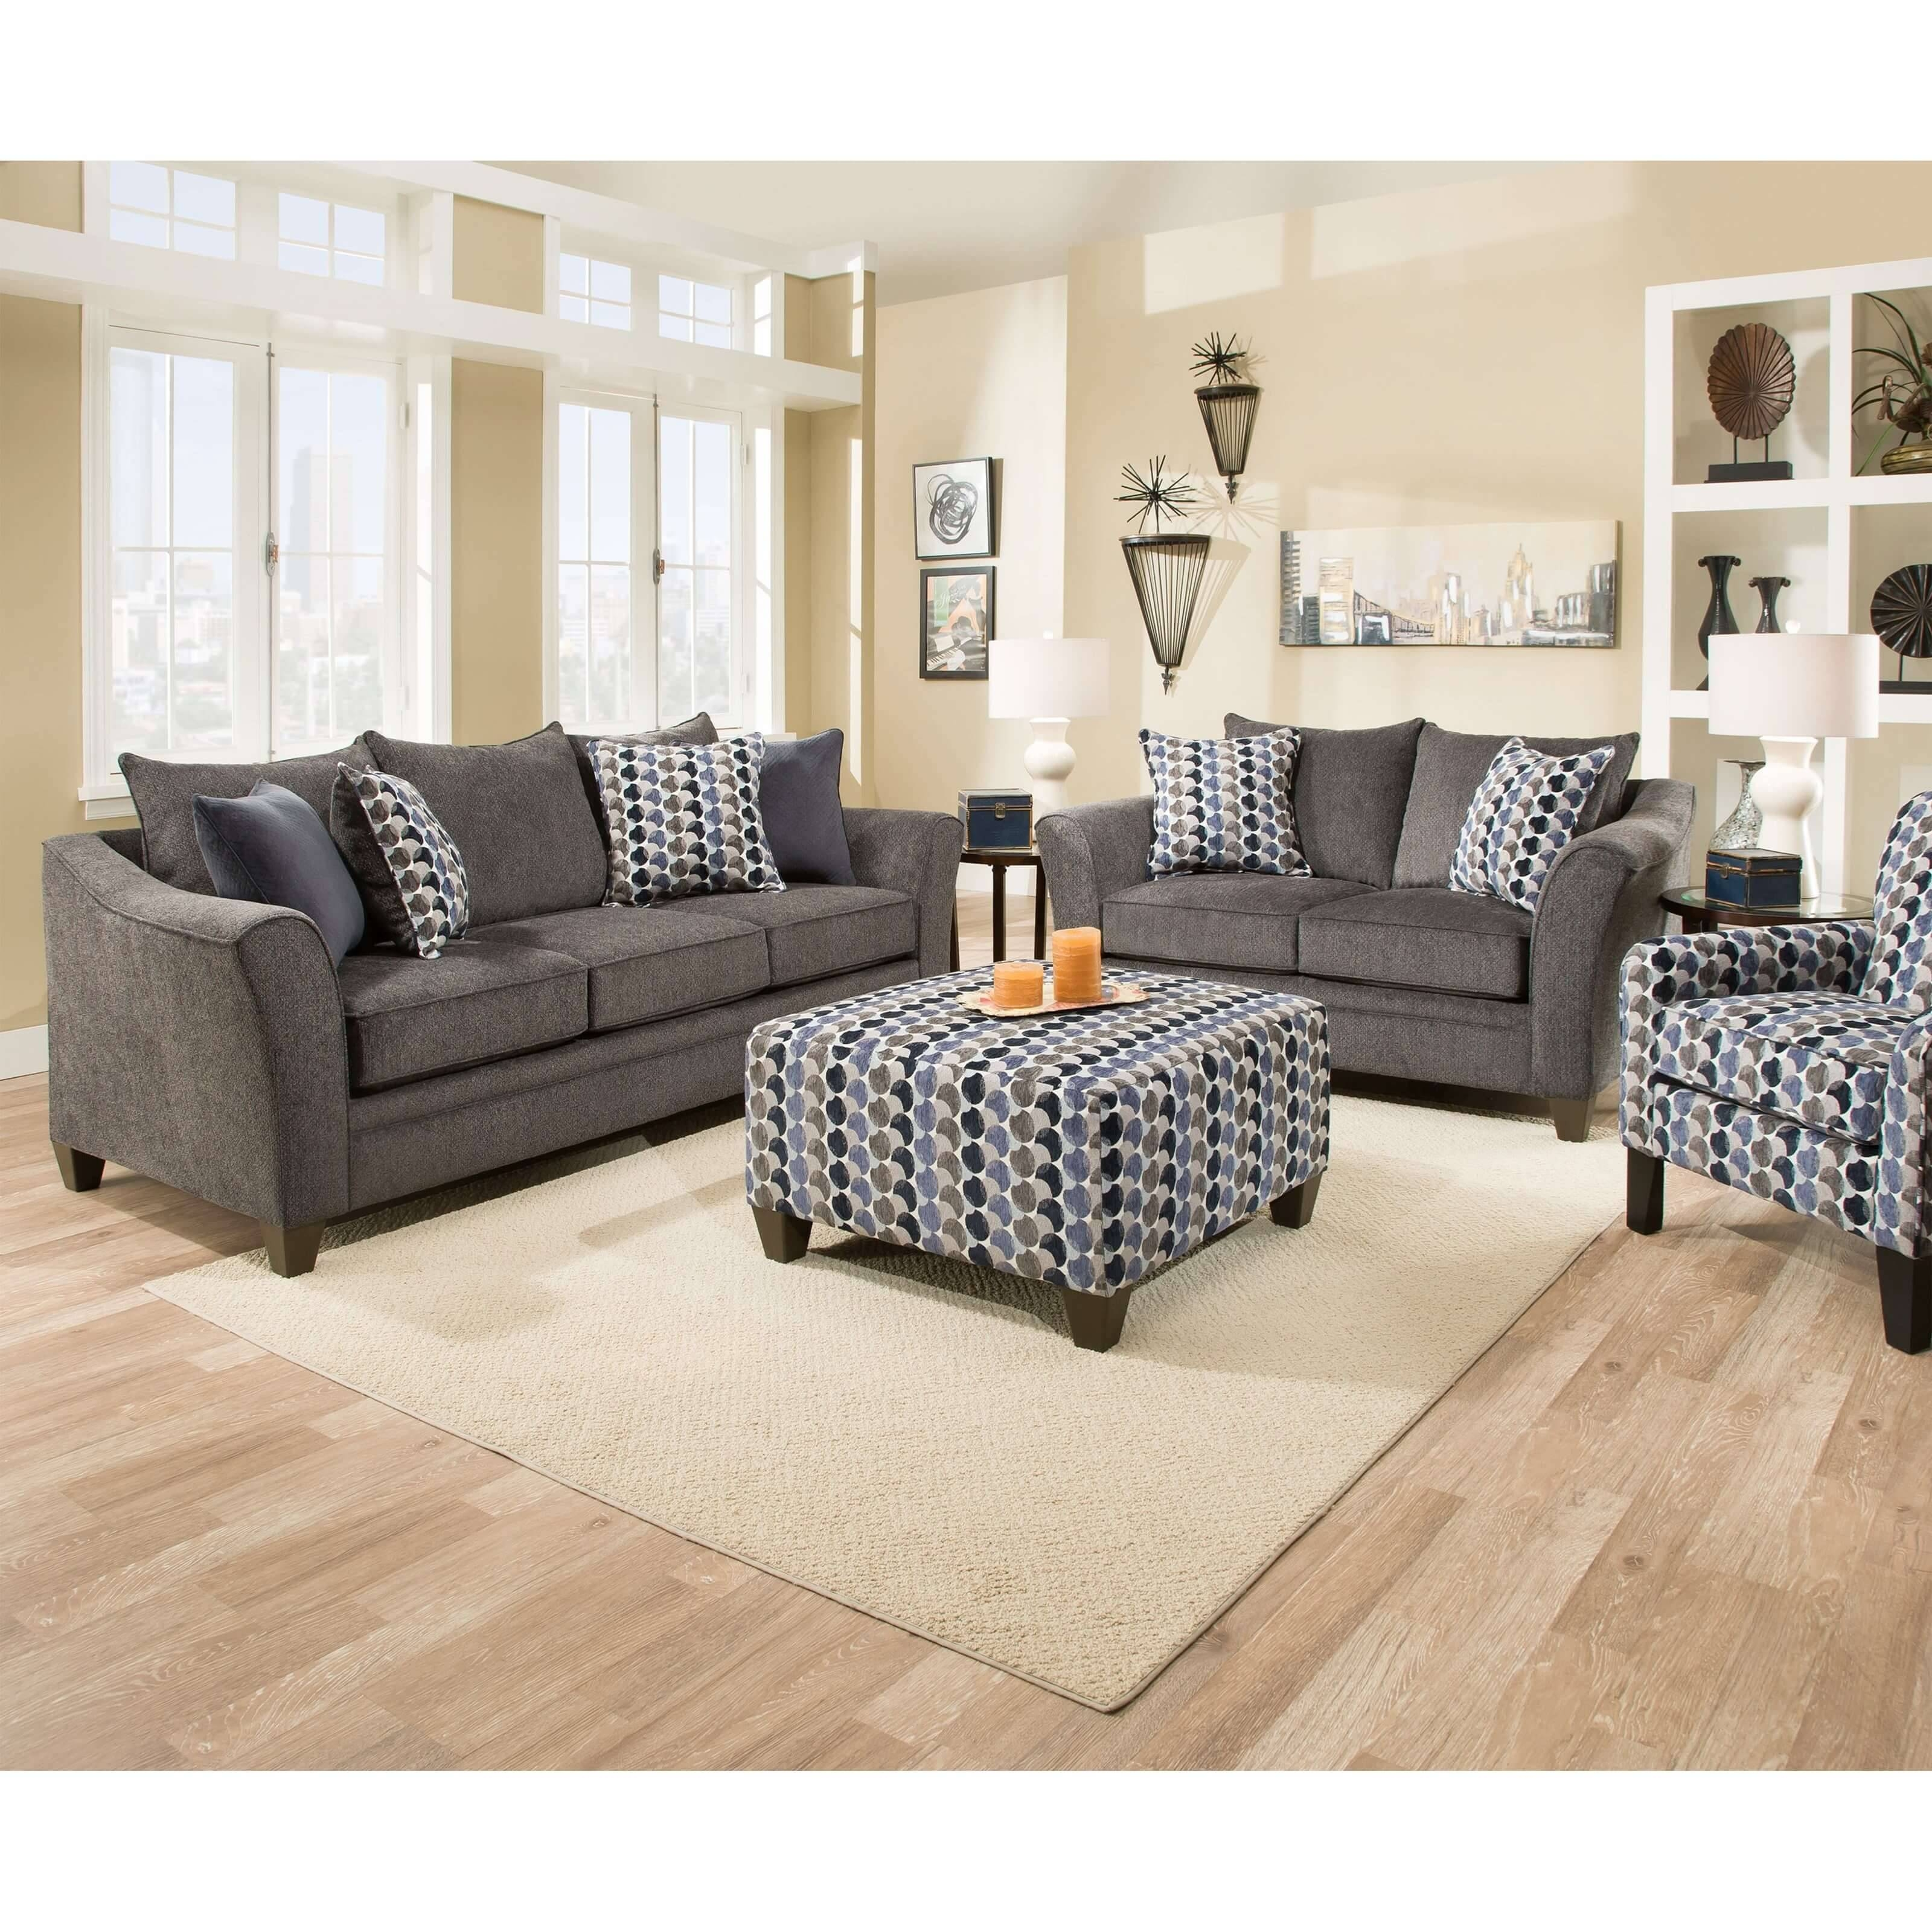 Albany Slate Sofa And Loveseatsimmons for Simmons Sofas And Loveseats (Image 7 of 15)